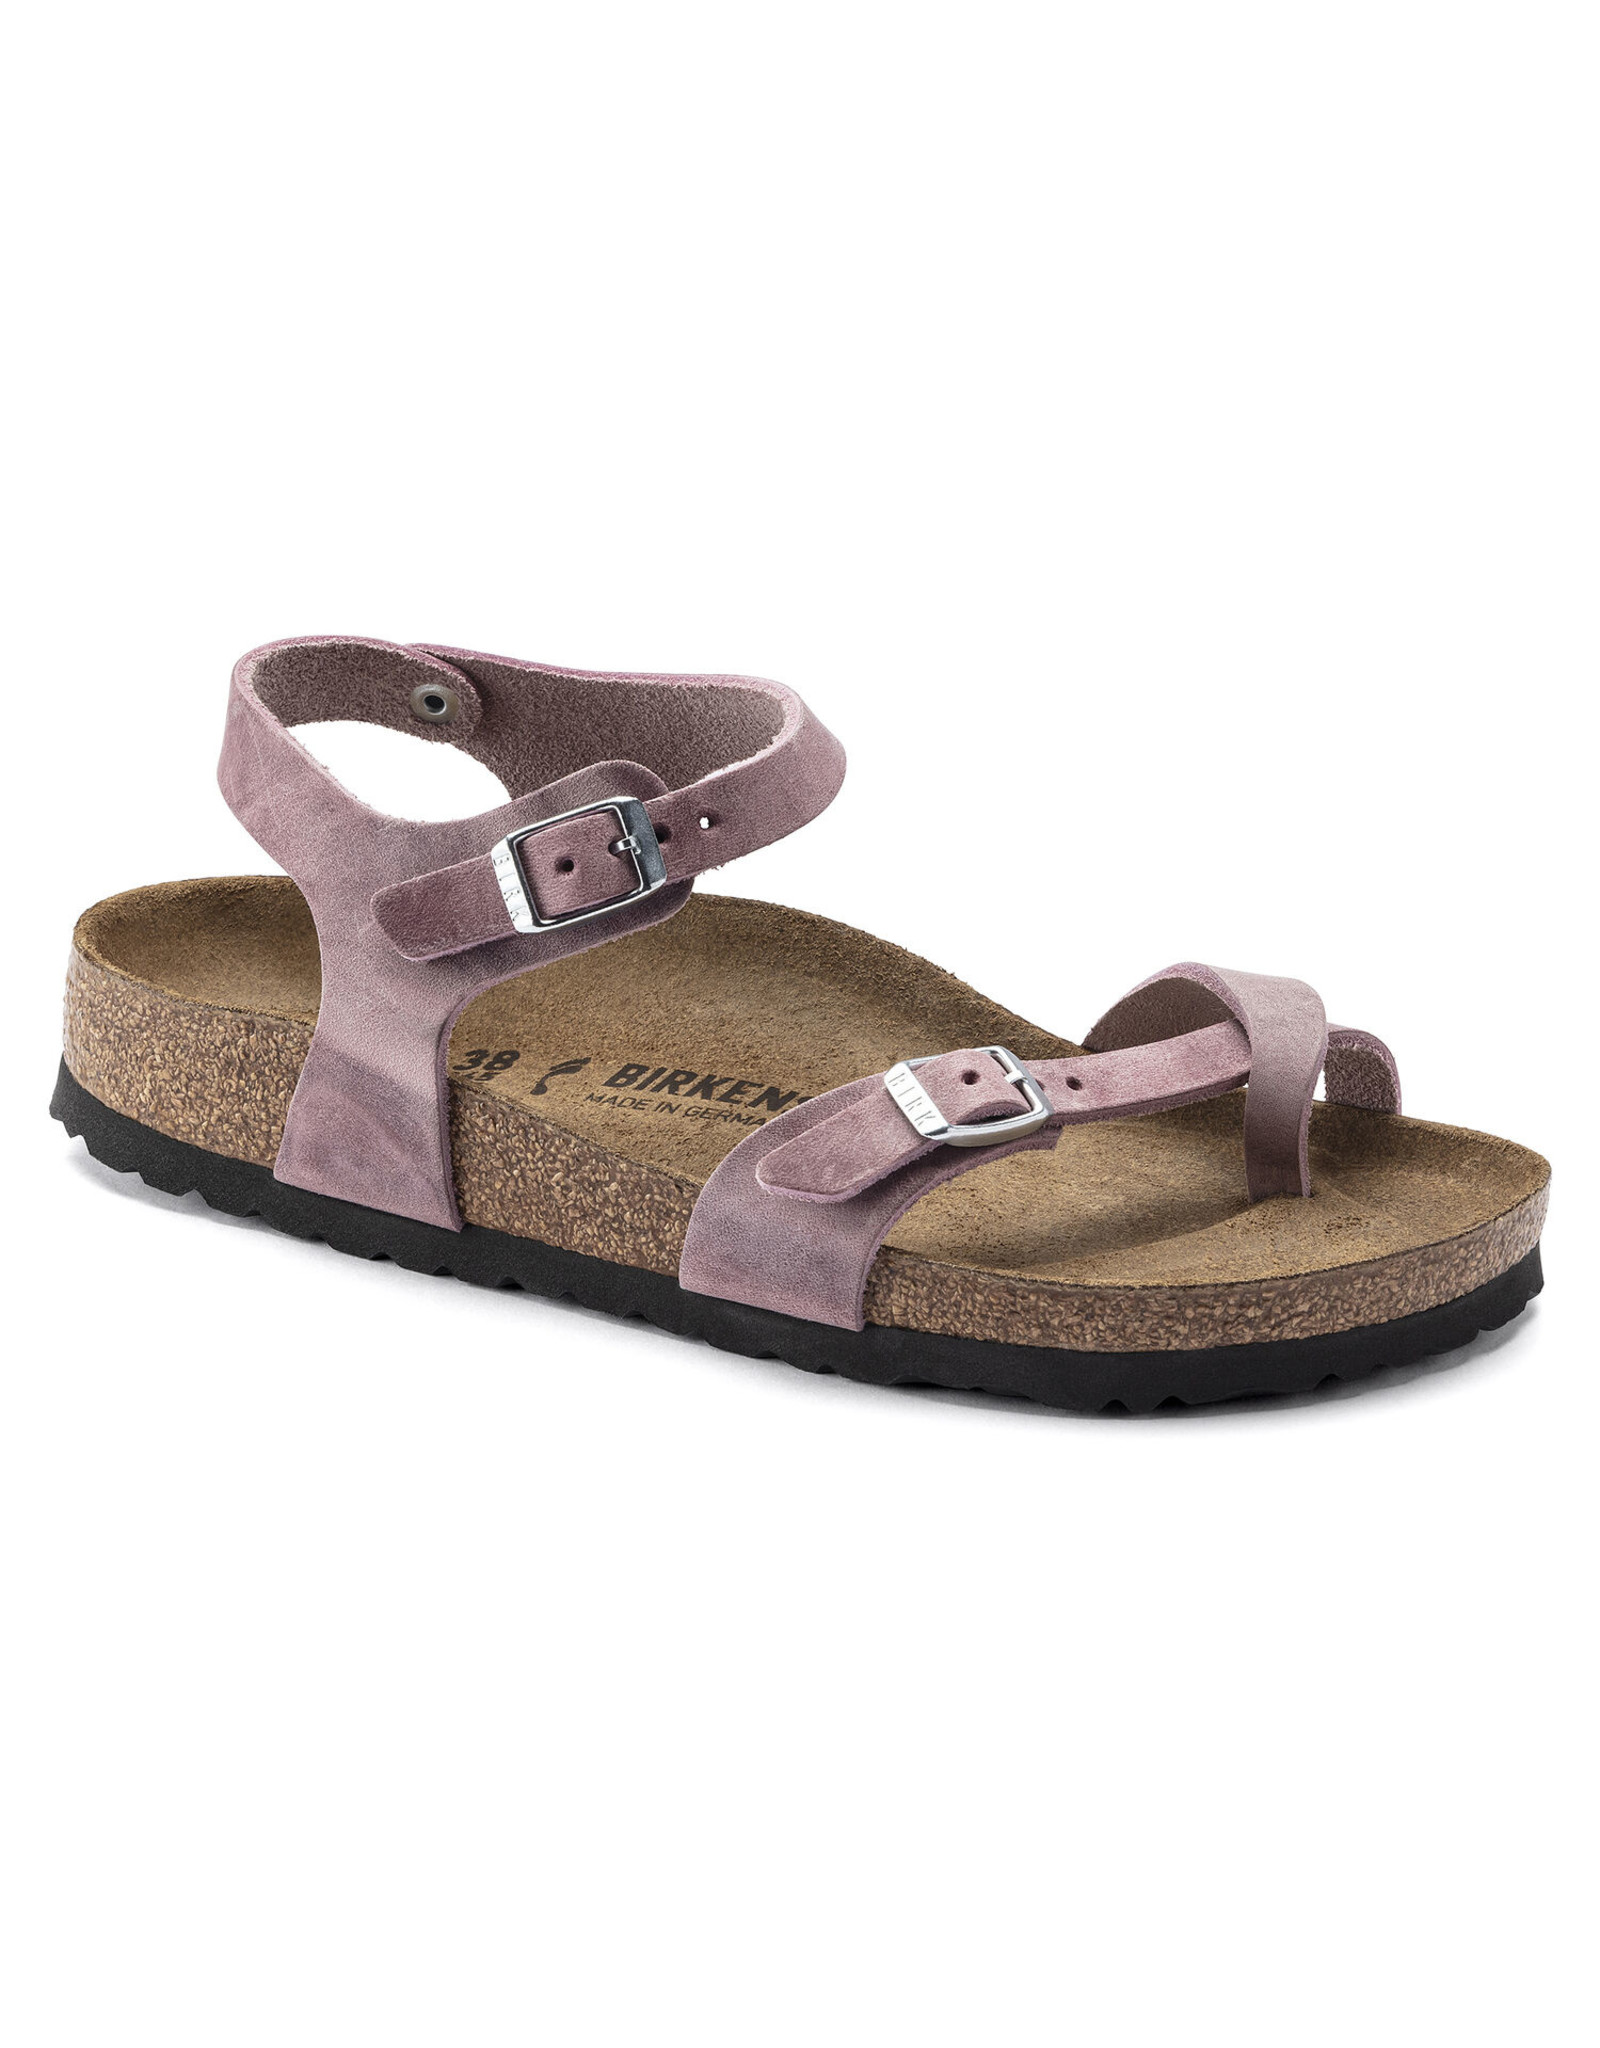 BIRKENSTOCK TAORMINA OILED LEATHER-LAVENDER BLUSH